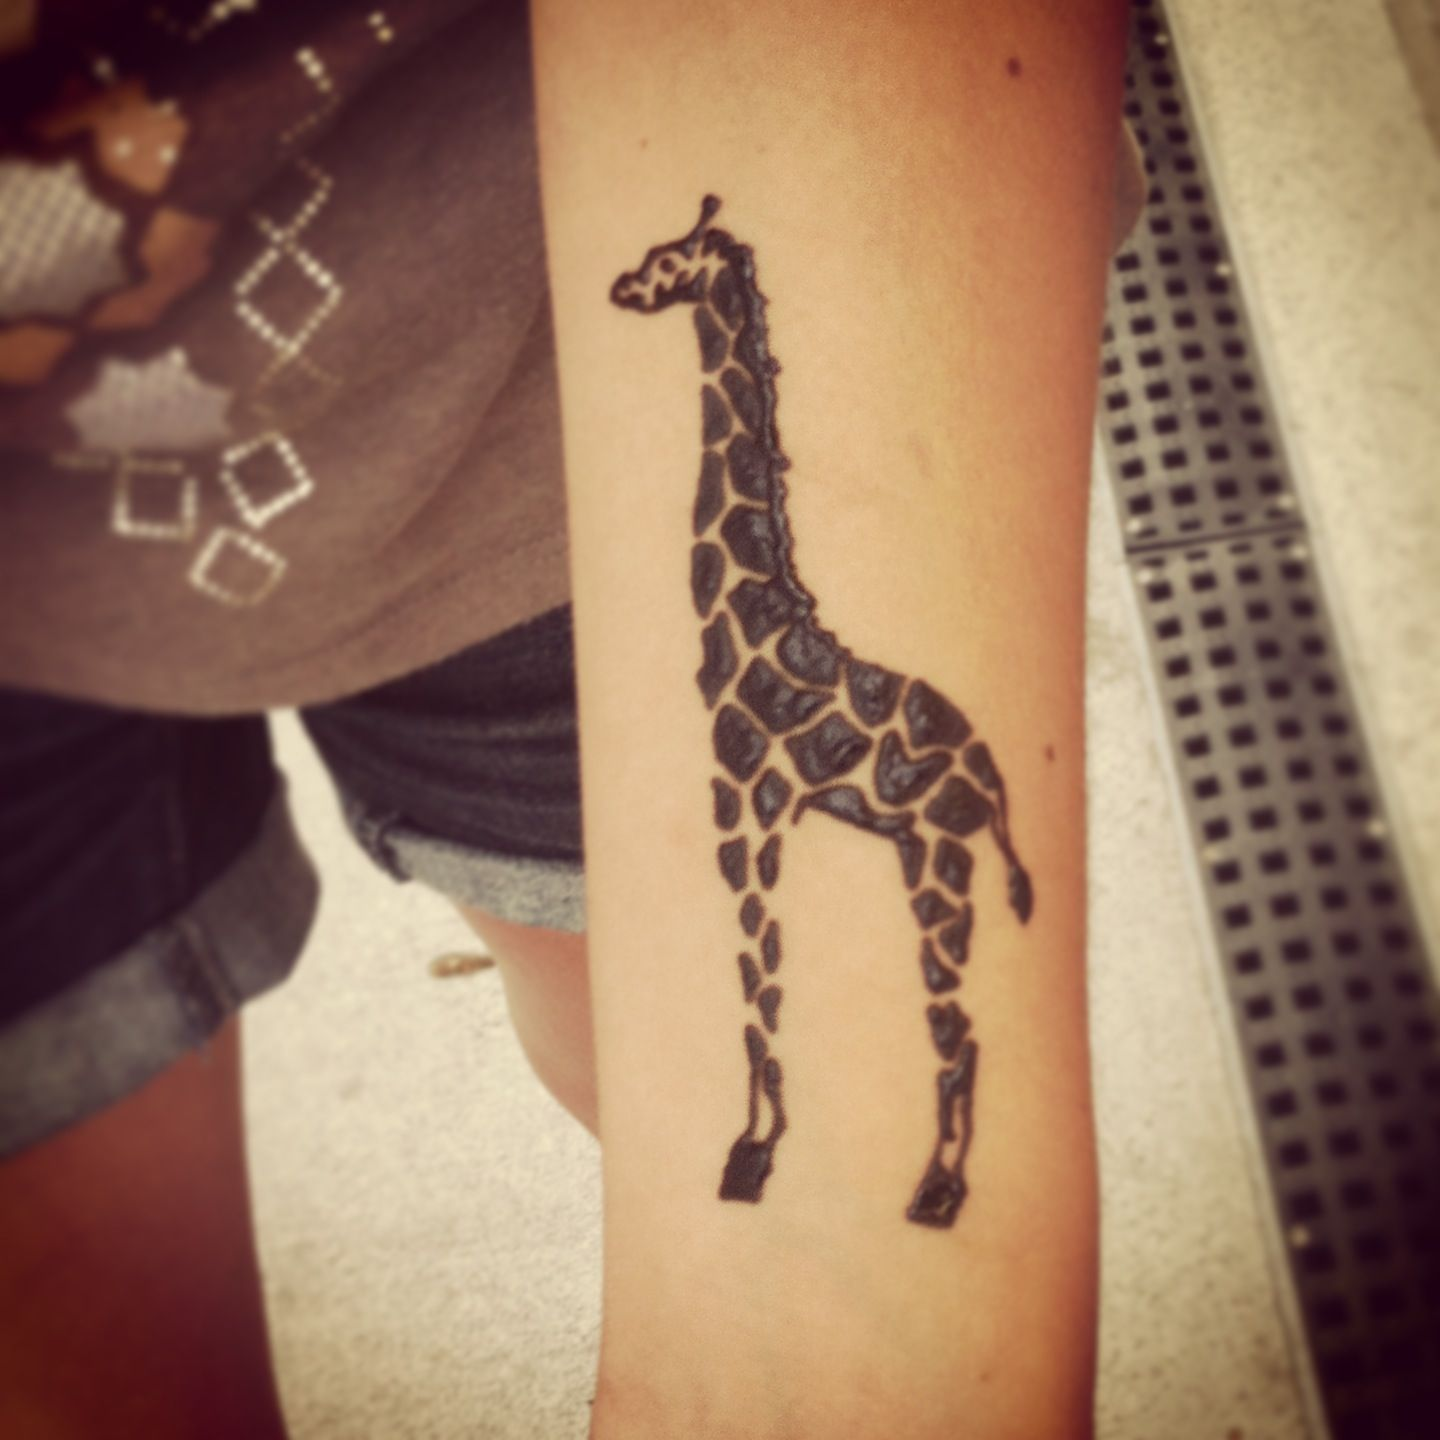 Little Henna Tattoos: My Giraffe Henna Tattoo On Wrist...I Love It! #tattoo